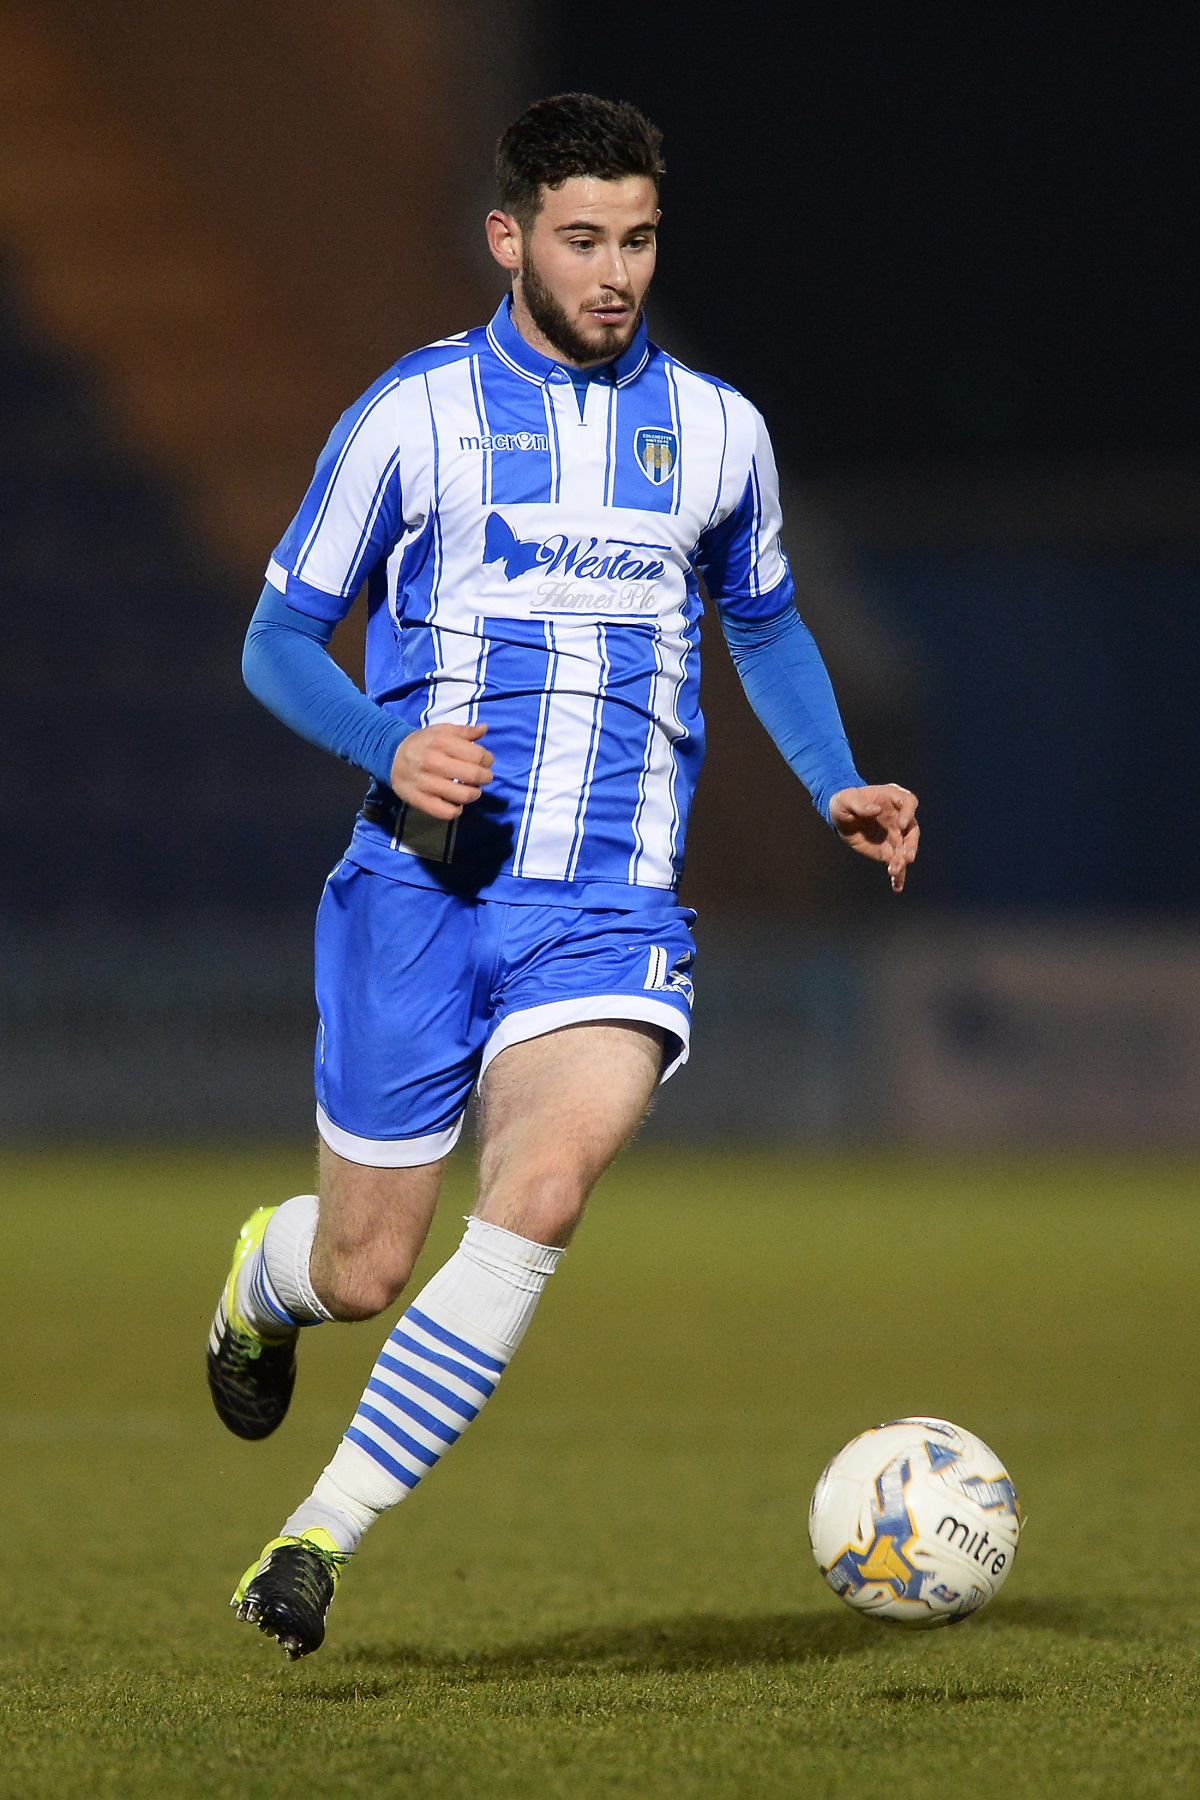 Signing up - Charley Edge has penned a new one-year contract with Colchester United